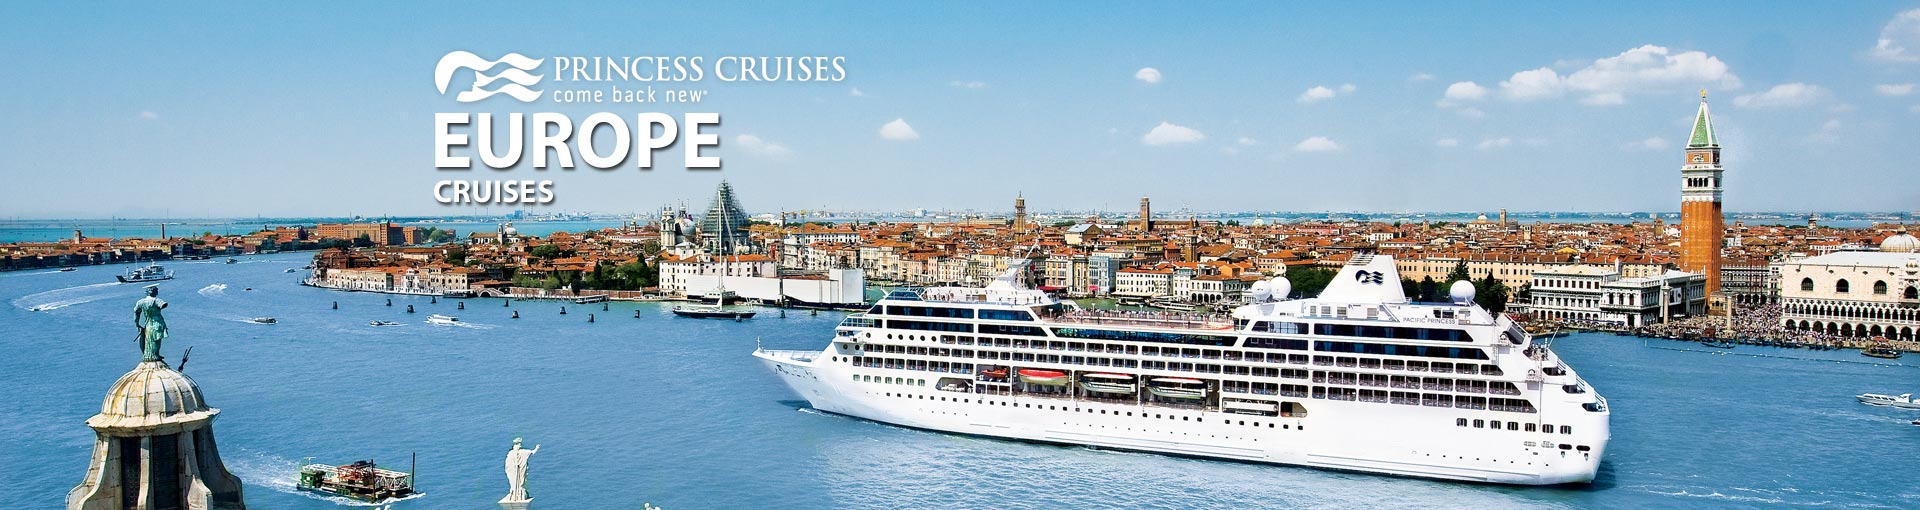 Princess Europe Cruises 2018 And 2019 European Princess